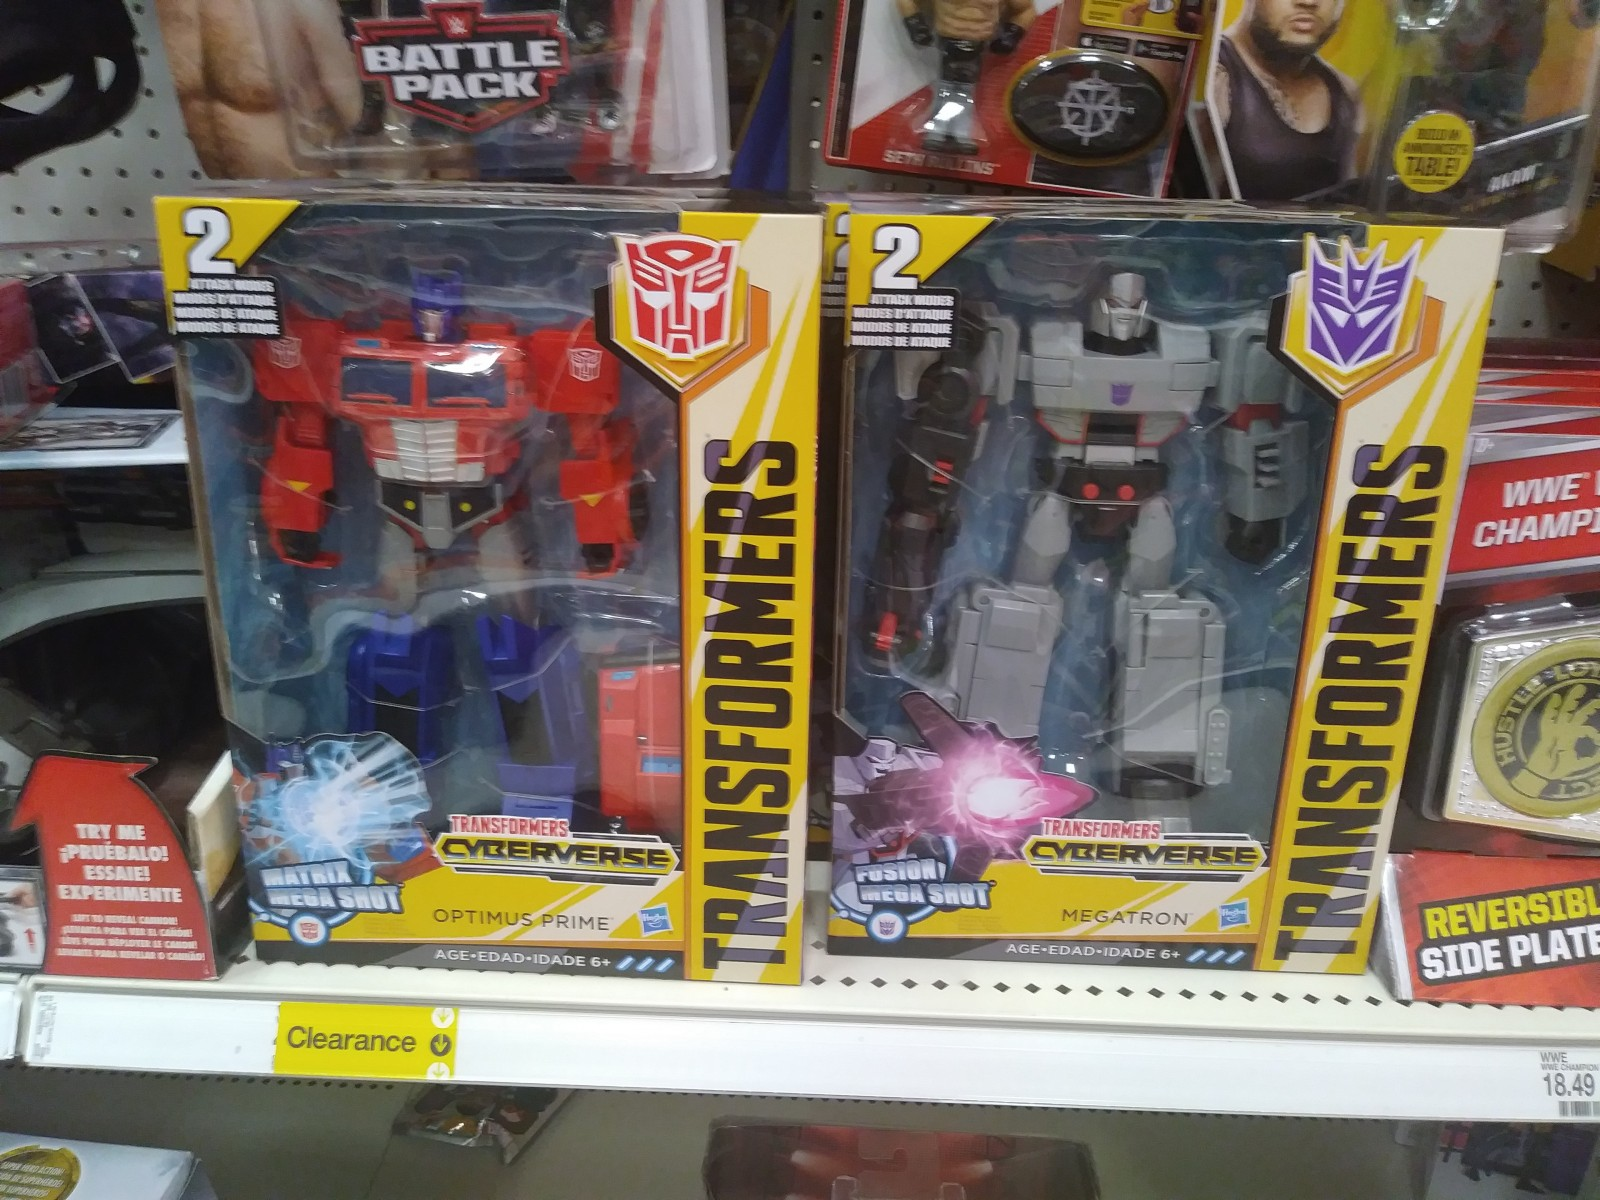 Transformers Cyberverse Ultra and Ultimate Figures at US Retail